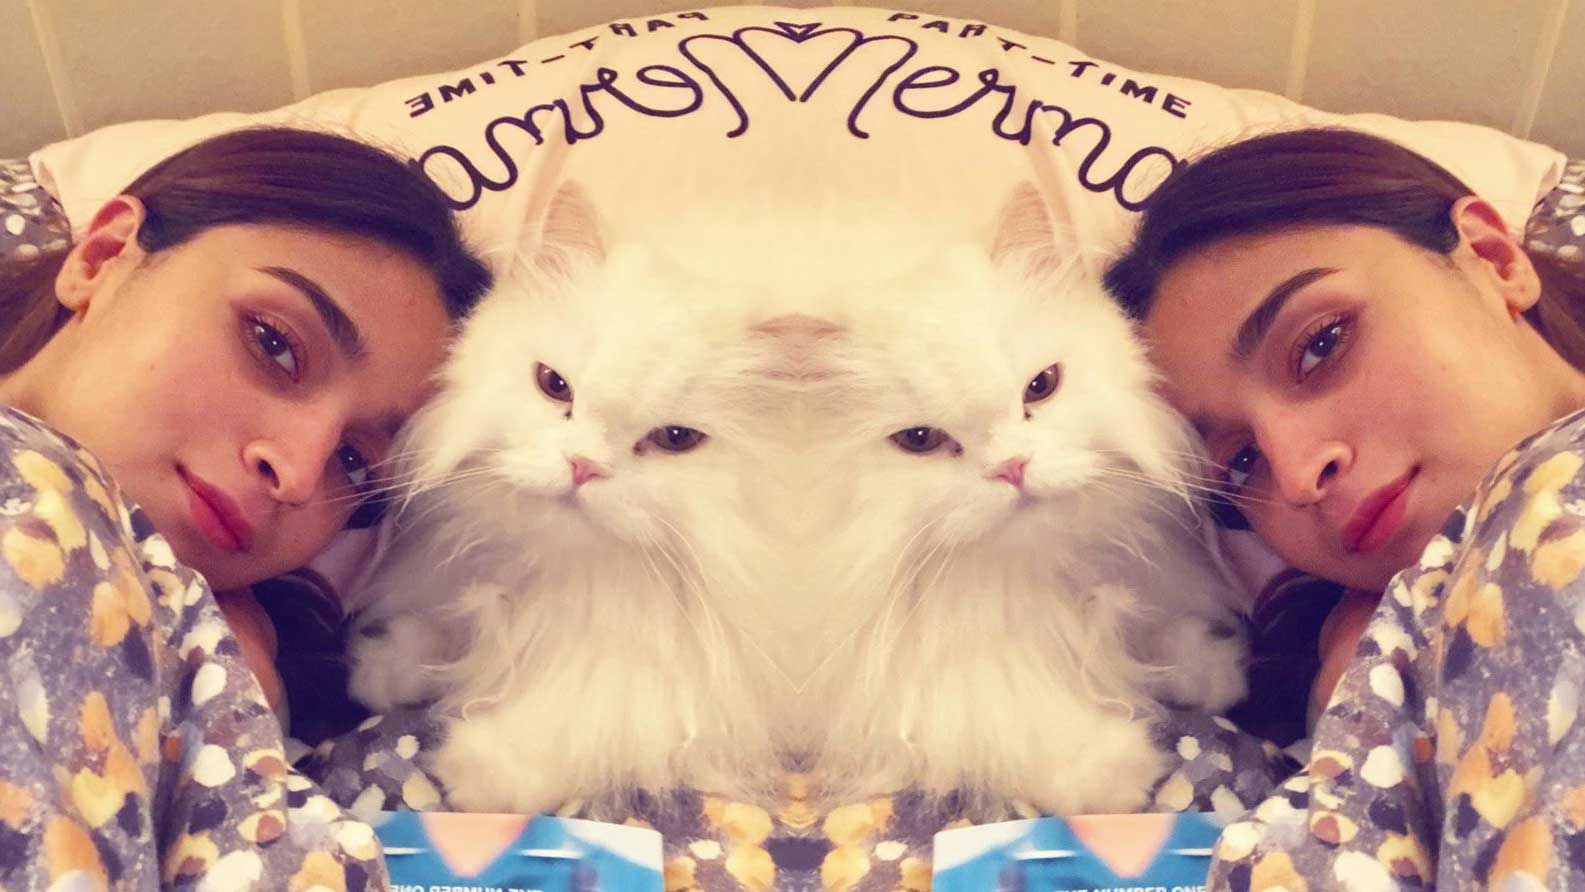 alia-bhatt-shares-adorable-picture-with-her-purry-friend-says-like-mother-like-cat